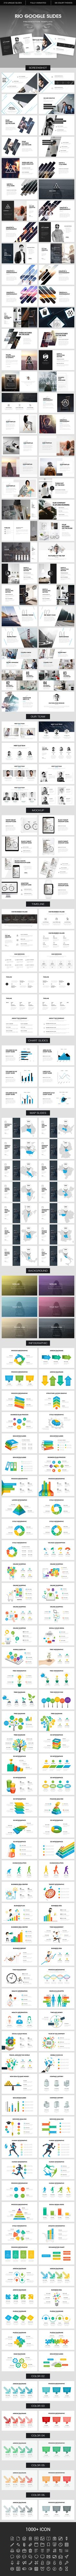 Rio Google Slides Template • Only available here ➝ http://graphicriver.net/item/rio-google-slides-template/16719578?ref=pxcr